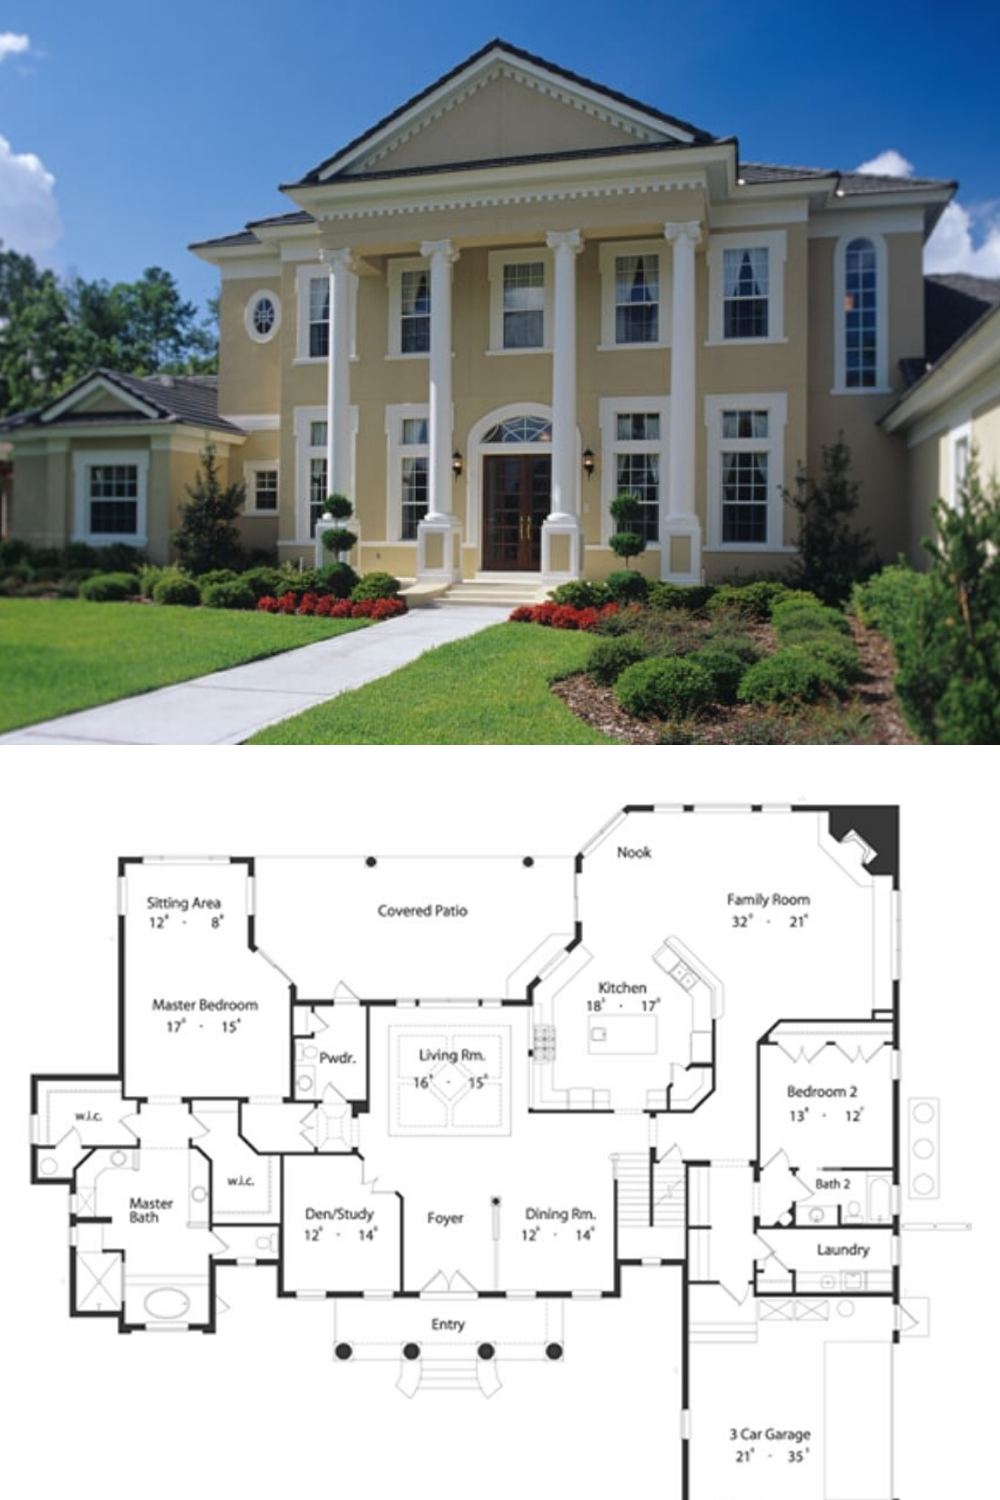 5 Bedroom Two Story Colonial Home Floor Plan Southern House Plan Luxury Floor Plans House Floor Plans